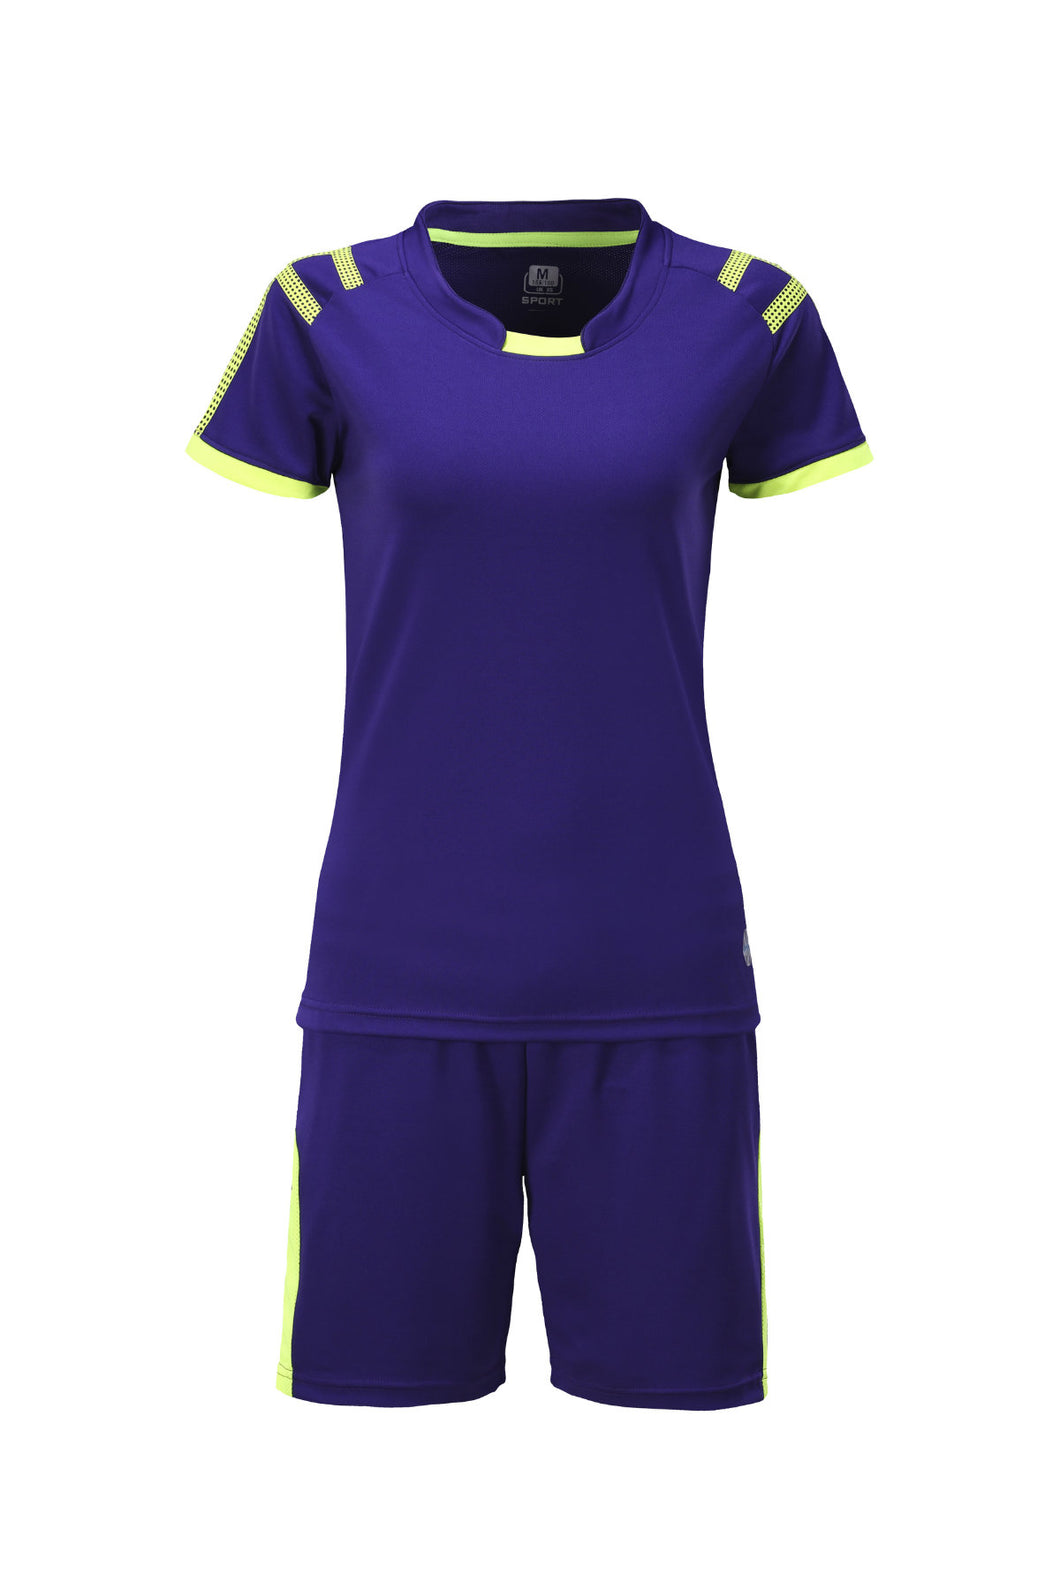 Full Football Kit - Royal Blue with Yellow Trim and Shorts.